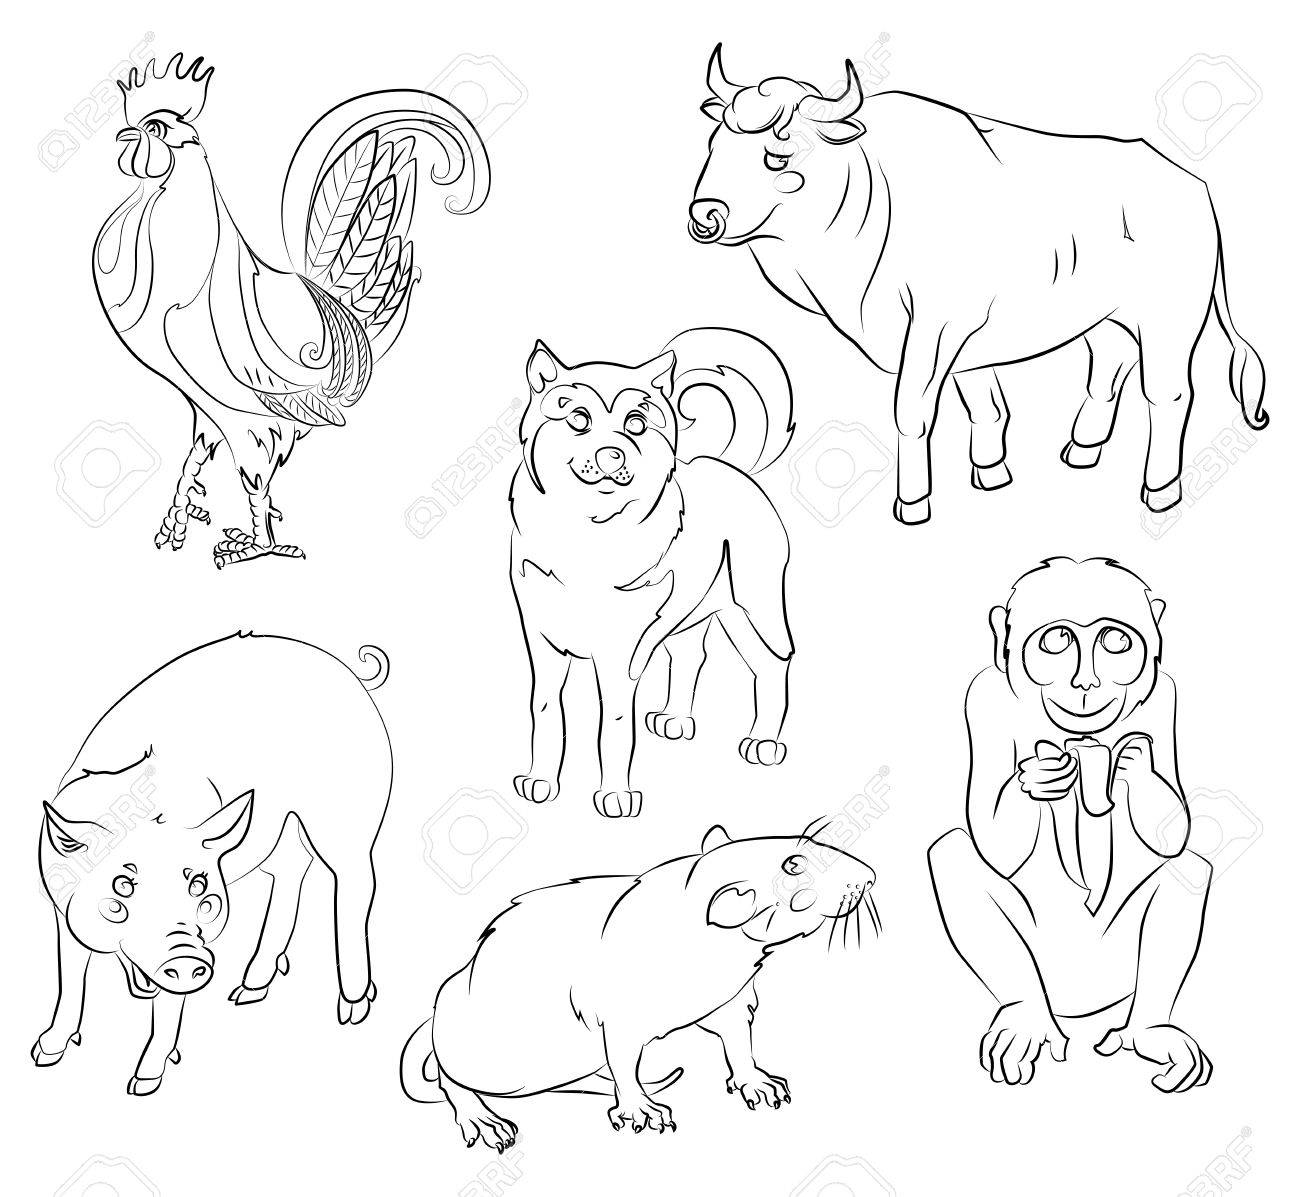 Six Chinese calendar animals, rooster, dog, pig, rat, monkey and ox